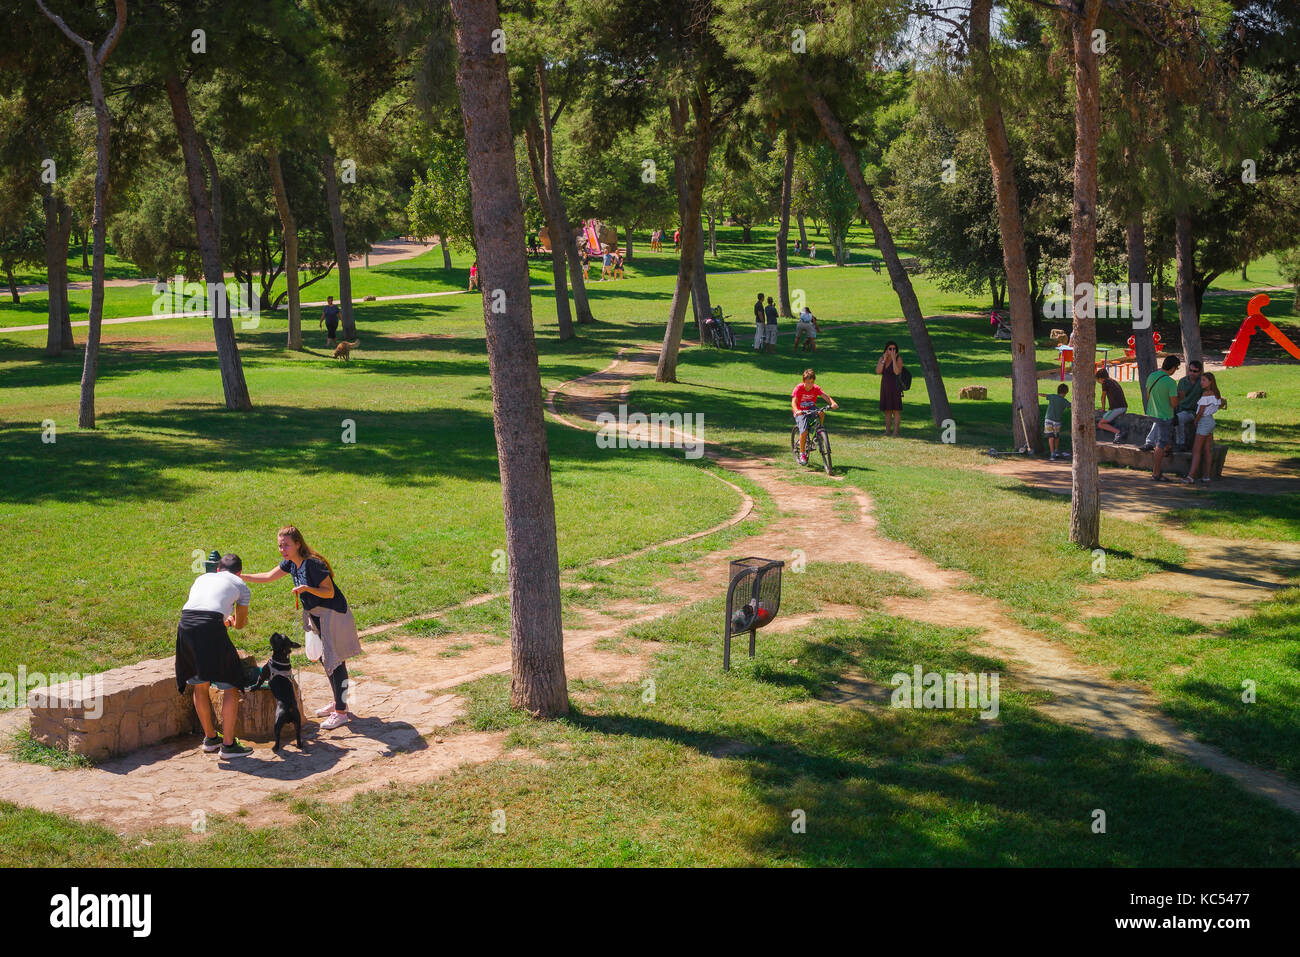 Turia garden Valencia, people at leisure in the Jardines del Turia riverbed park on a Sunday morning in summer, - Stock Image